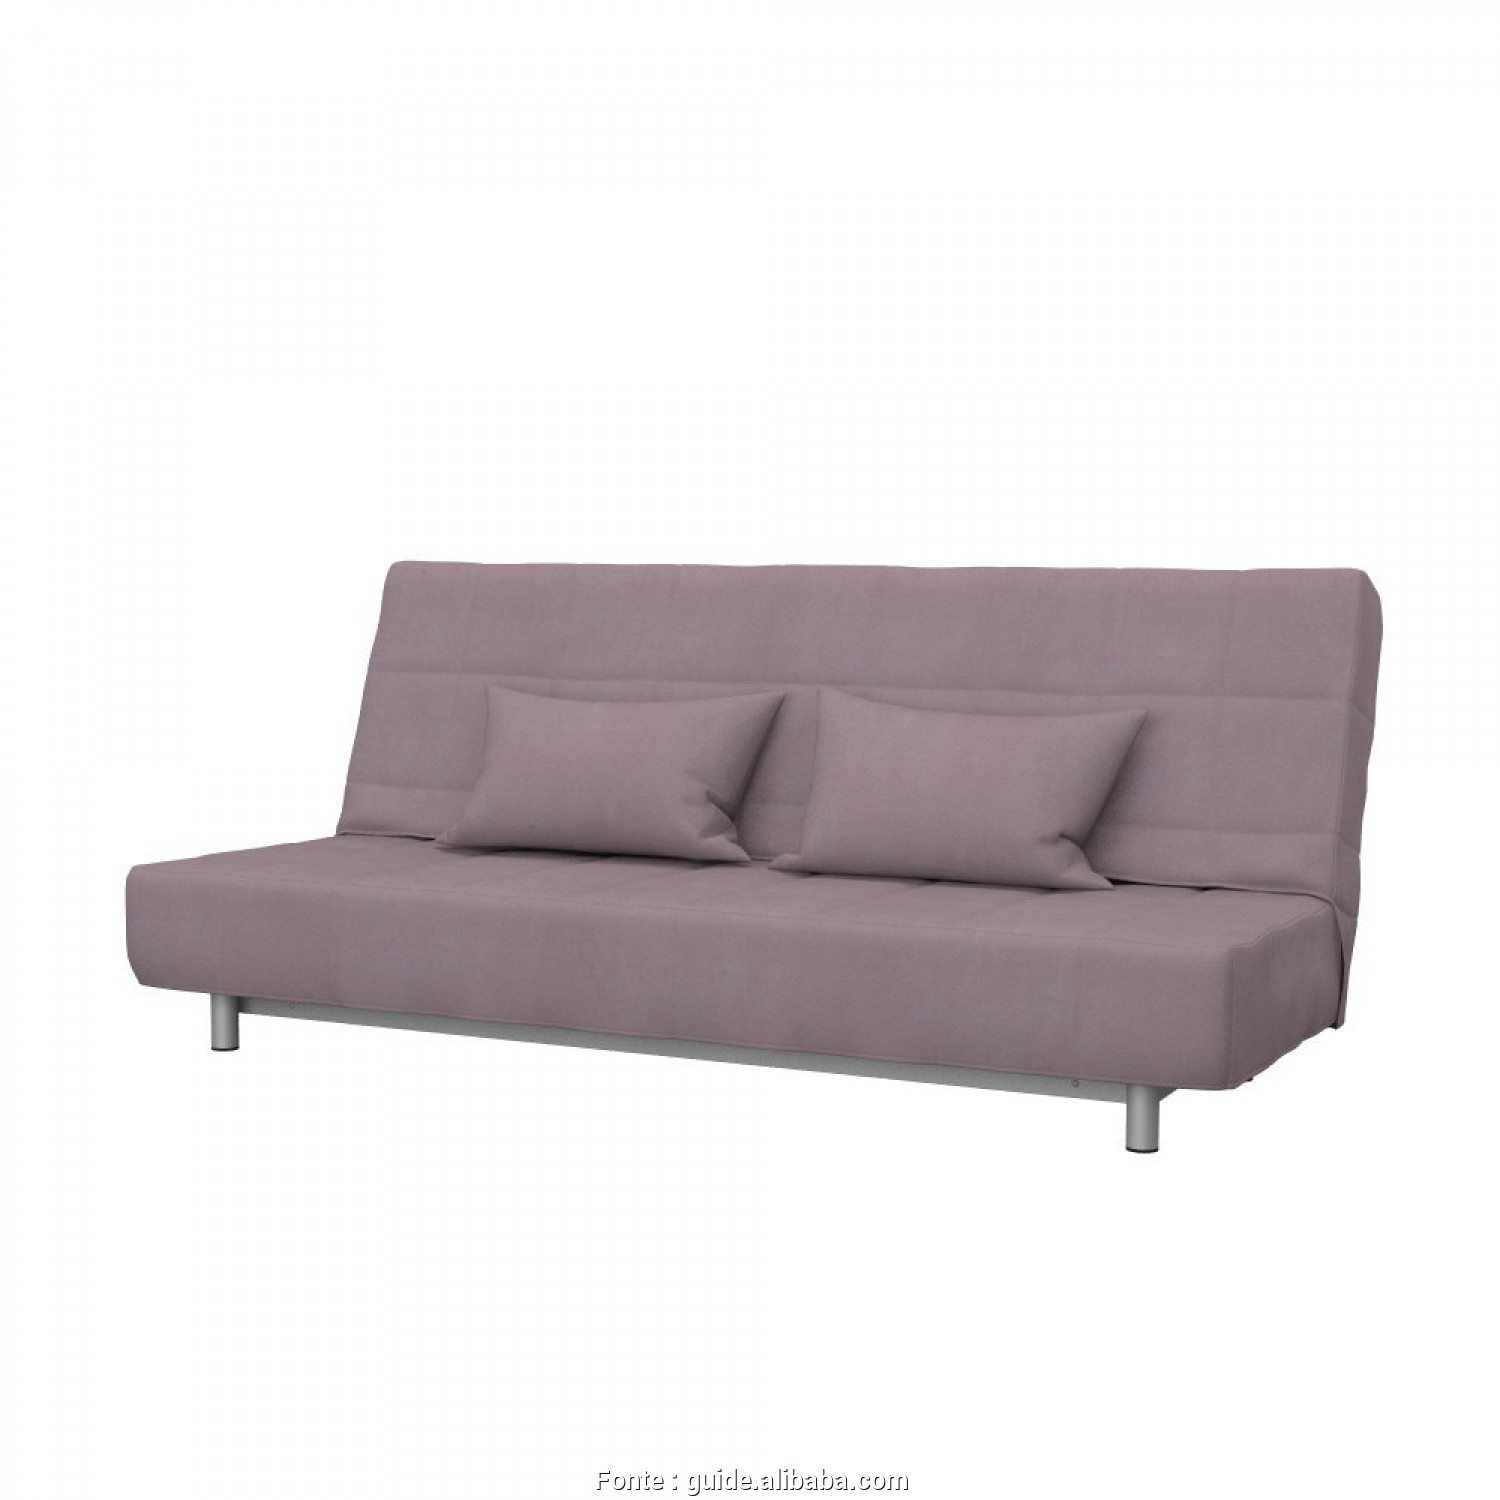 Beddinge Ikea Dimension, Loveable Get Quotations · Soferia, IKEA BEDDINGE 3-Seat Sofa-Bed Cover,, Leather Stone